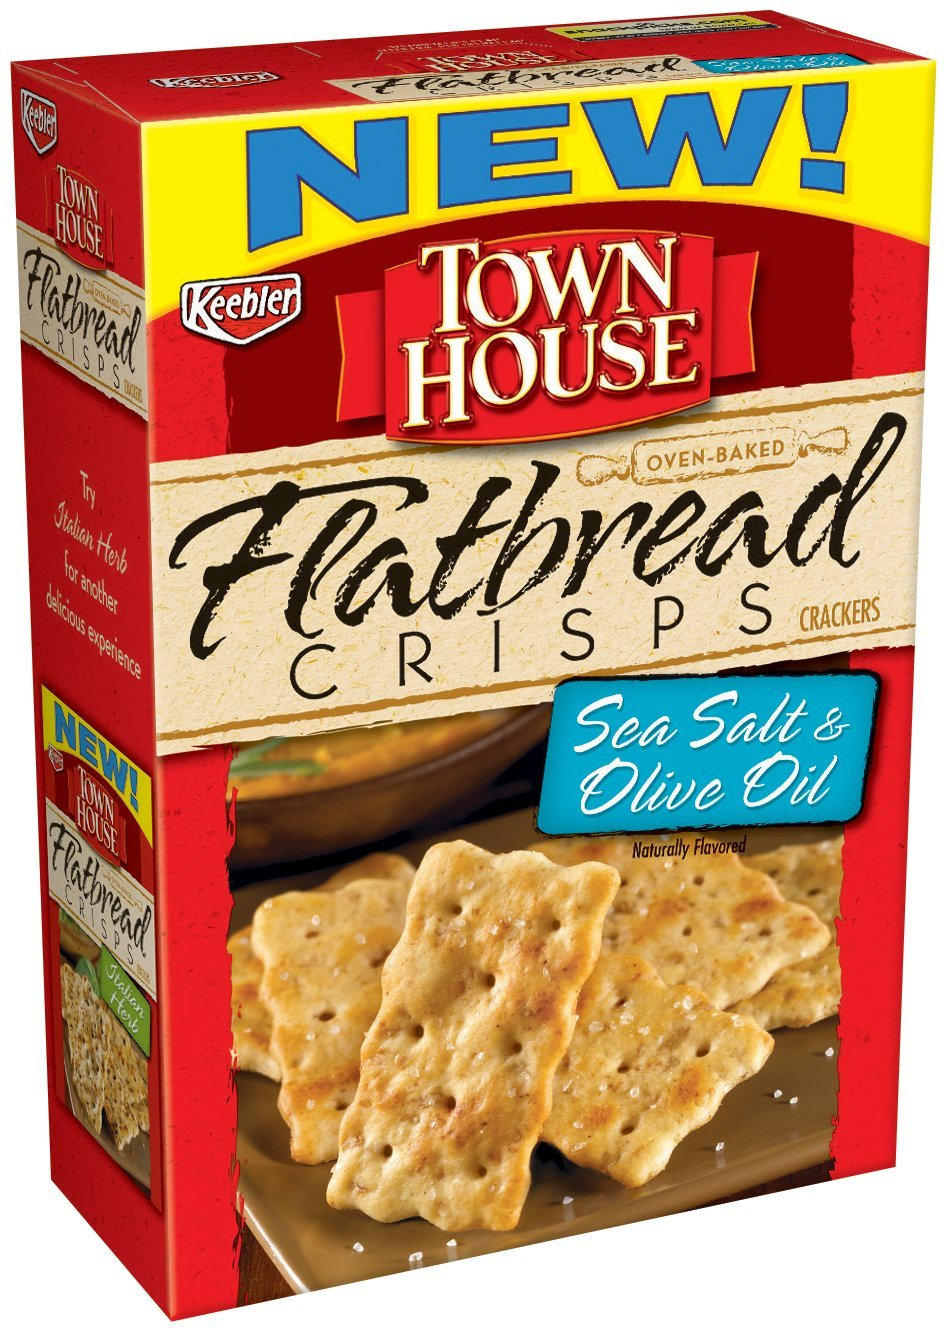 Town House Flatbread Crisps Crackers, Sea Salt and Olive Oil, 9.5-Ounce Boxes (Pack of 4)